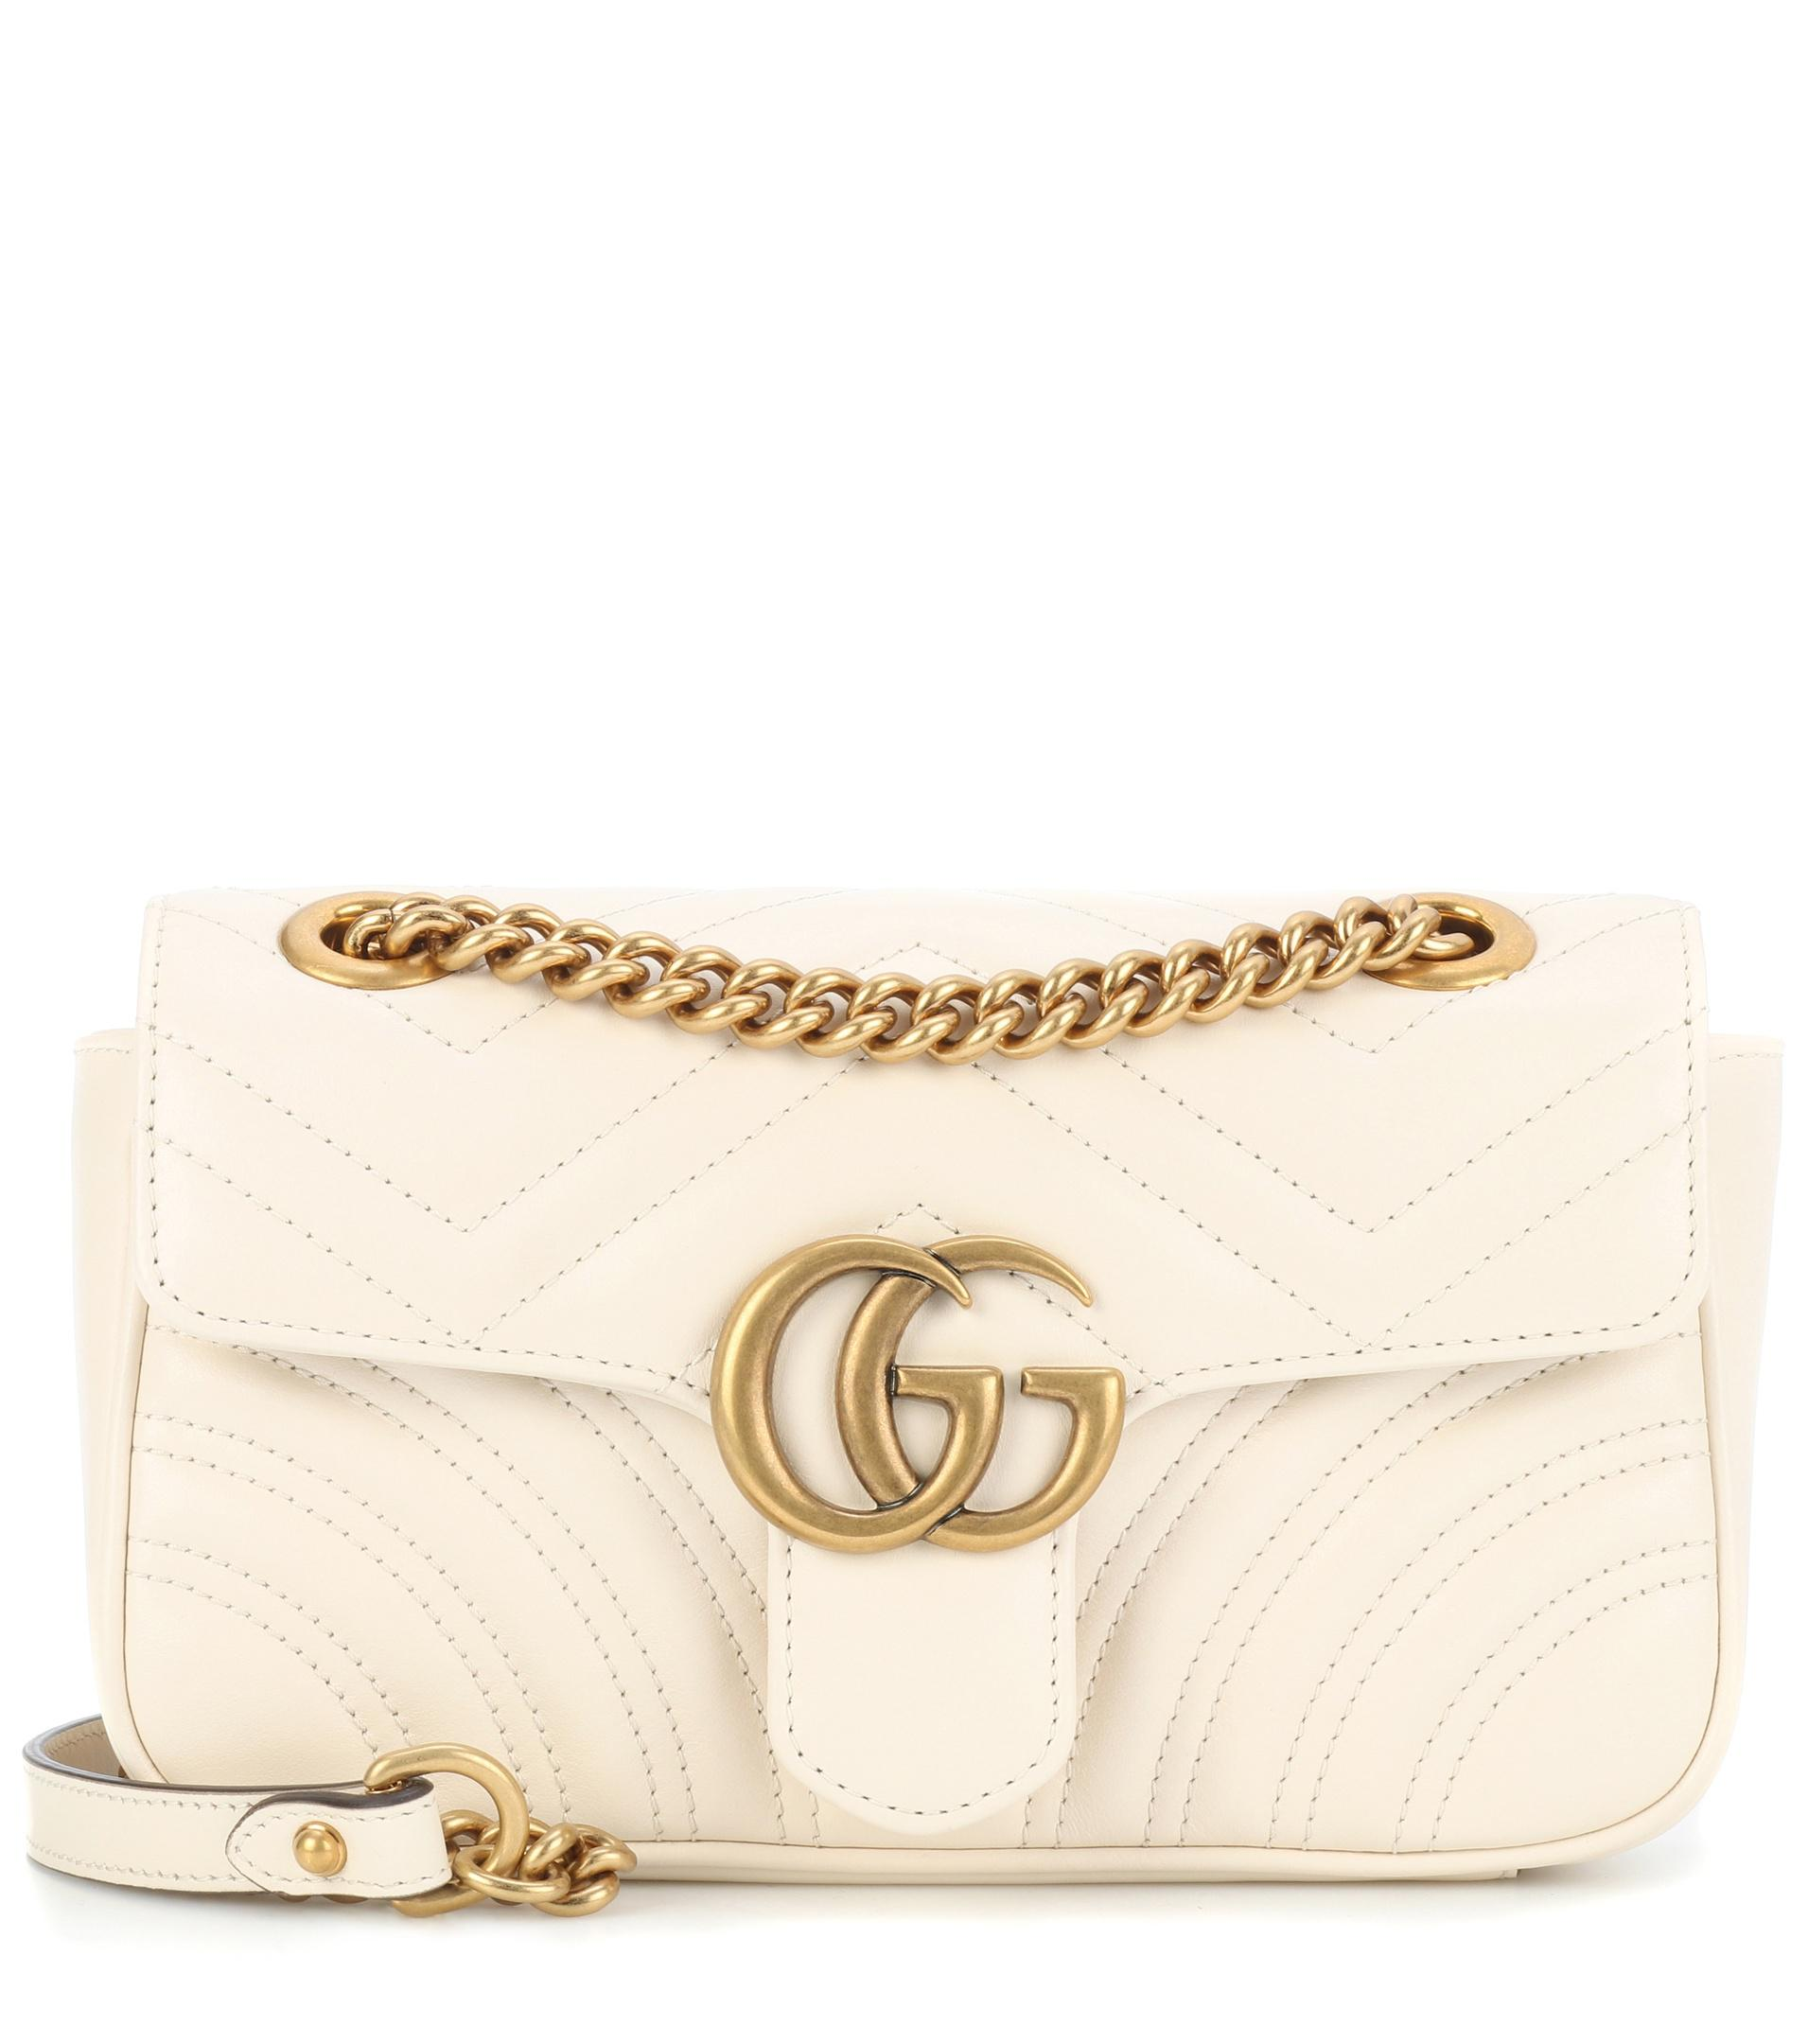 060f84a18c1 Gucci Gg Marmont Mini Leather Crossbody Bag in White - Lyst